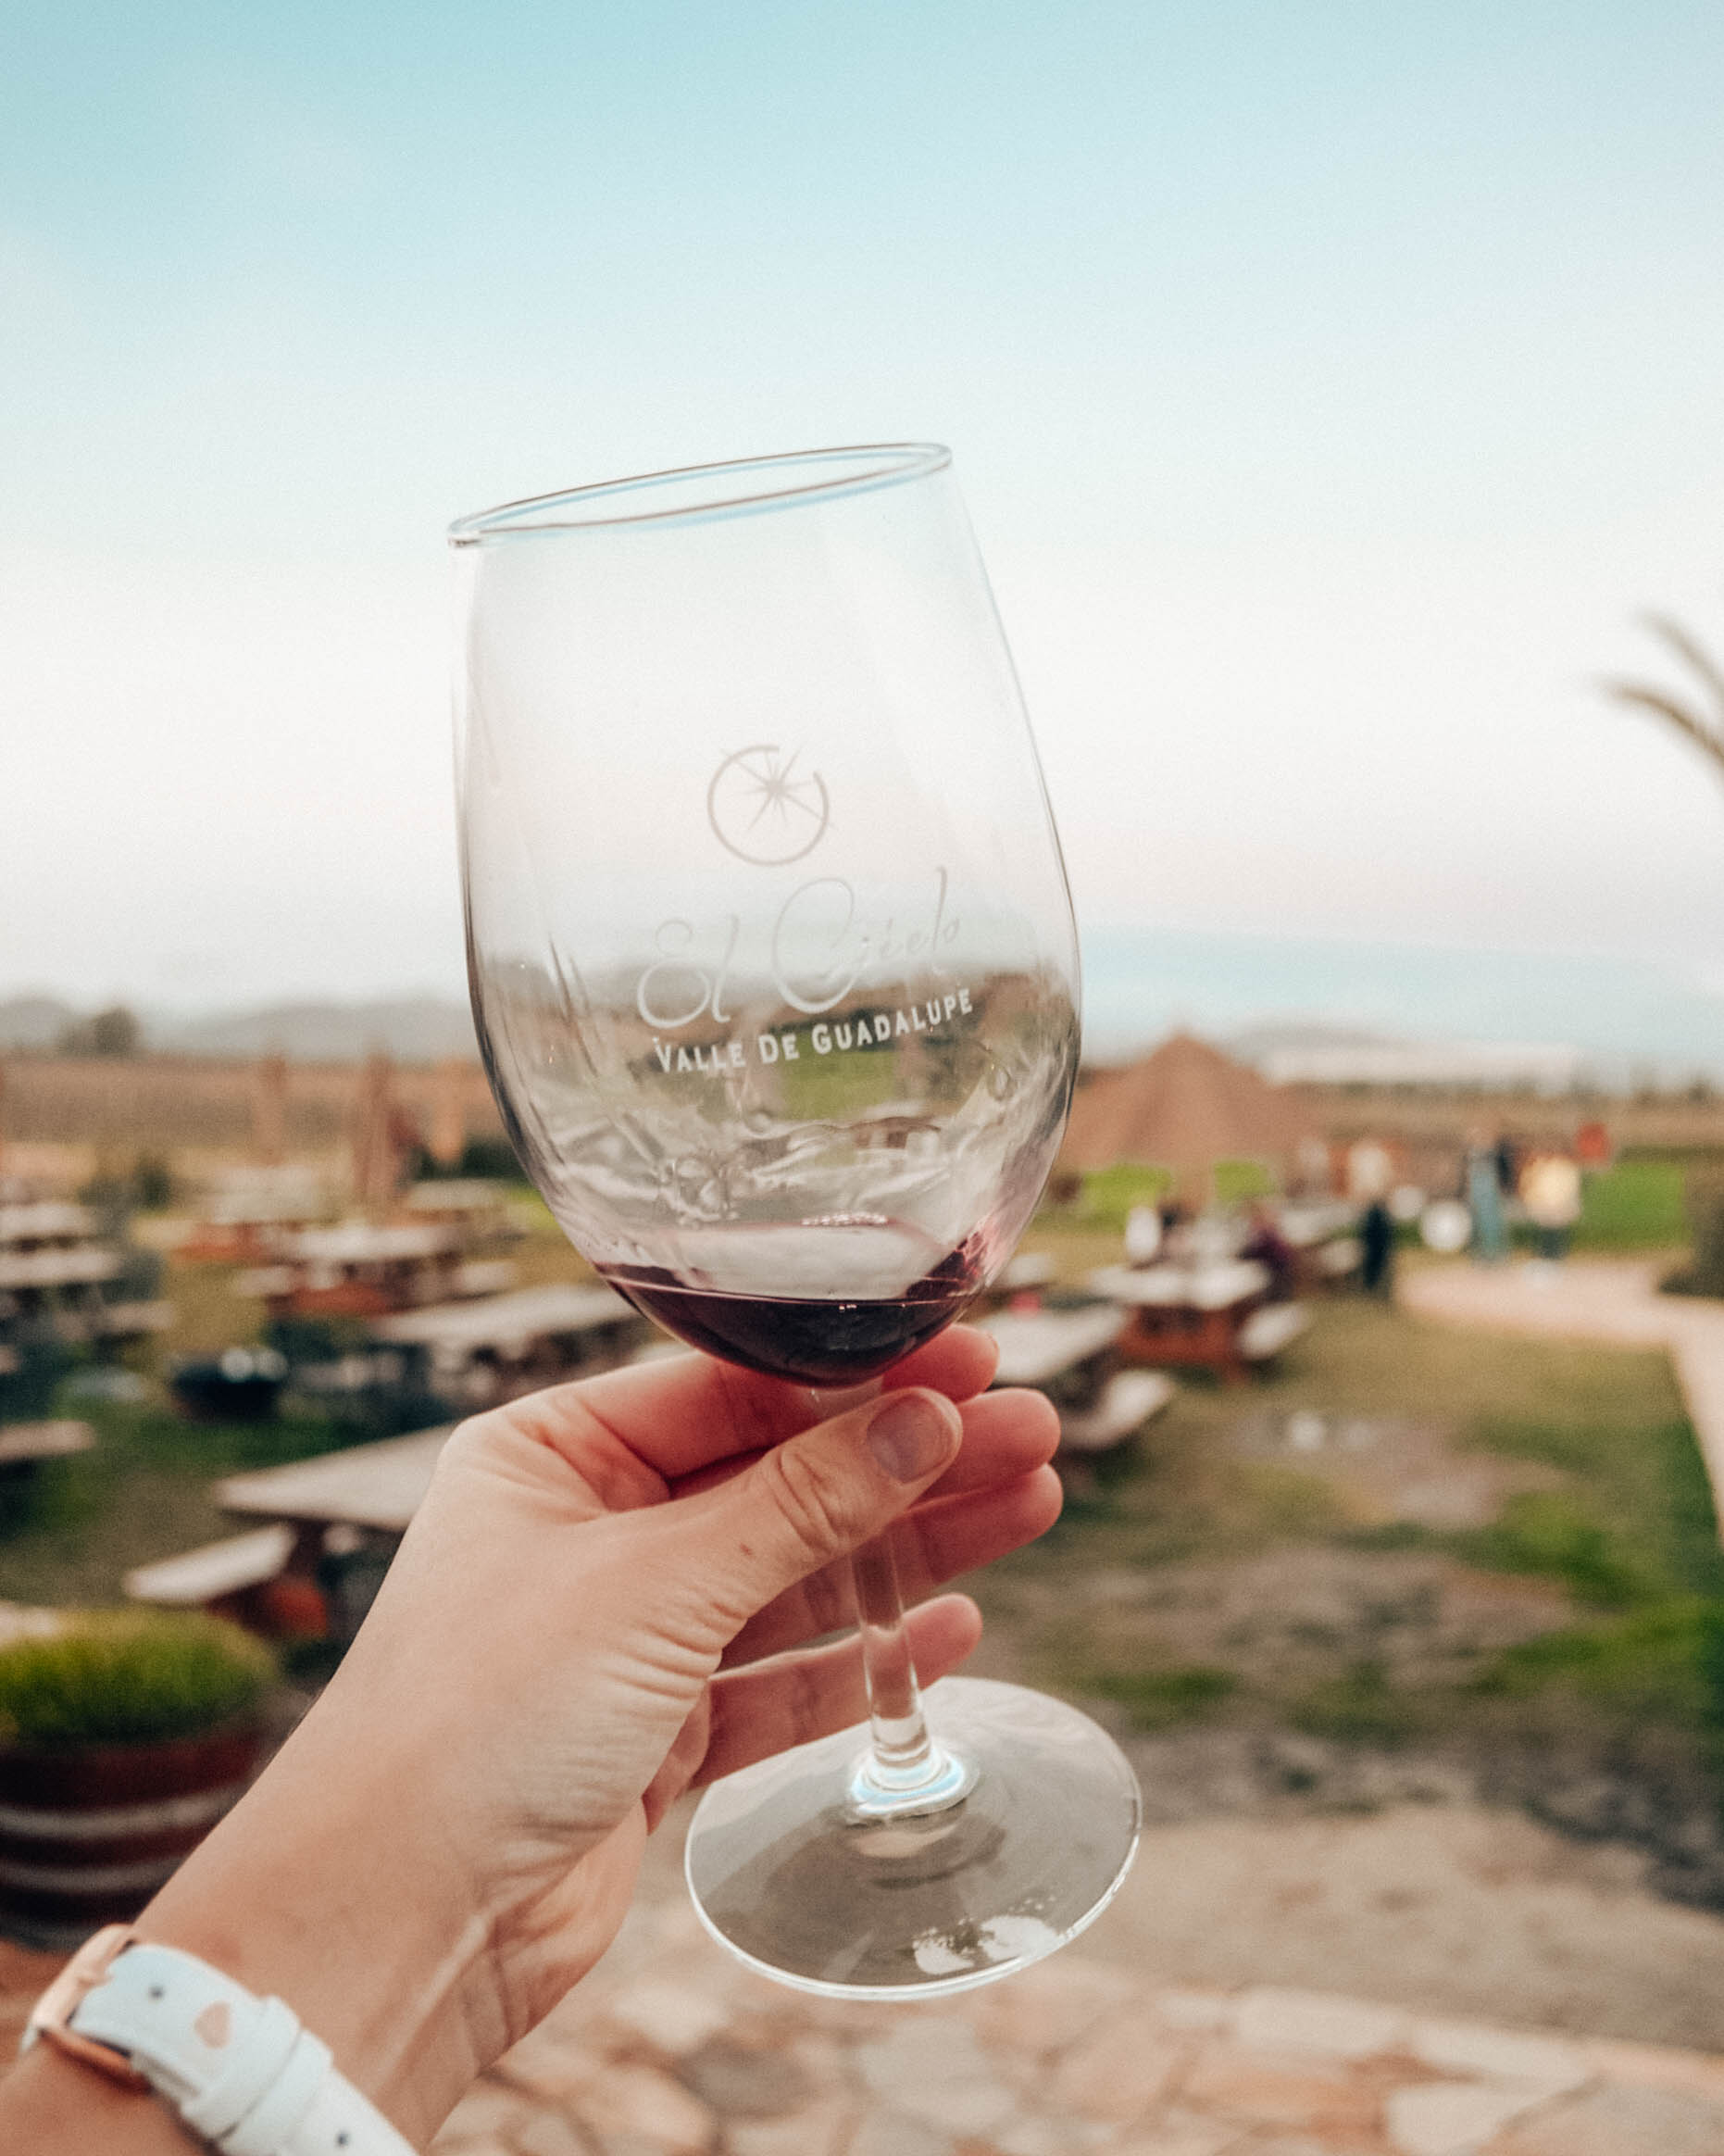 Mexico's Baja California is home to beautiful coastline AND wine! This post recaps wine Tasting in Mexico's Guadalupe Valley - two wineries we visited, plus a Frida Kahlo-inspired restaurant!